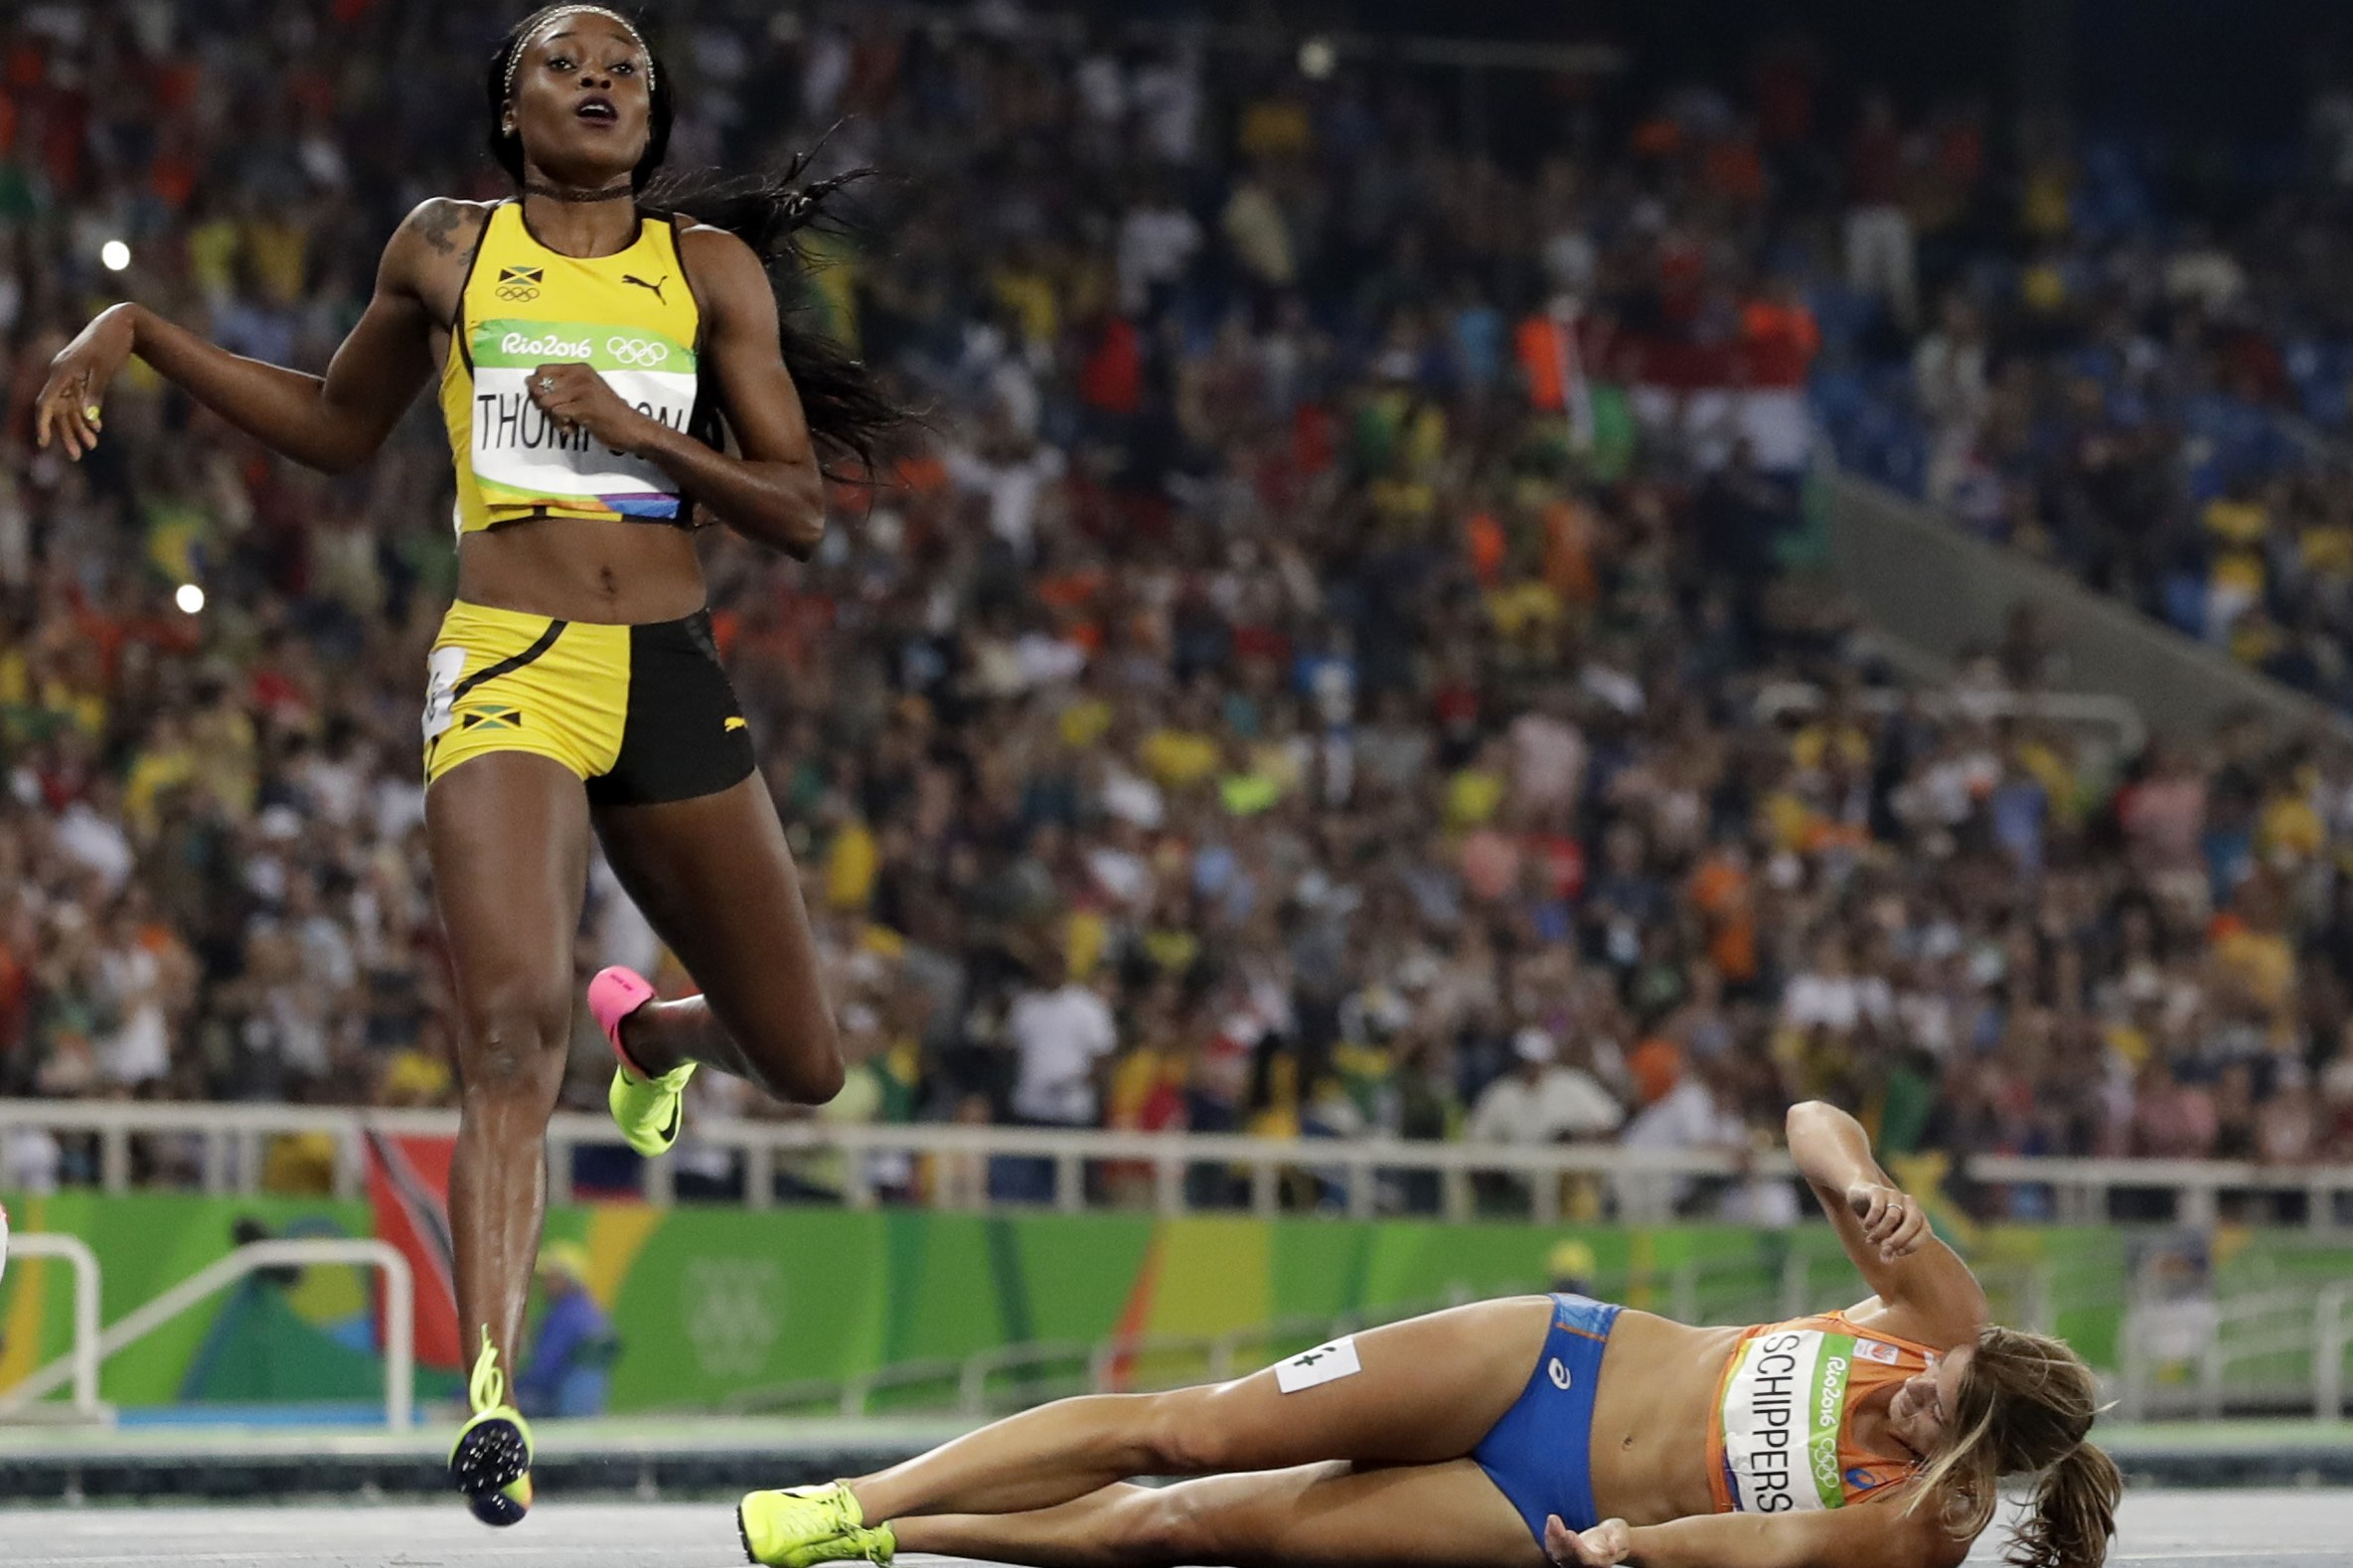 Second placed Netherlands' Dafne Schippers lies on the ground after falling over the finish line as Elaine Thompson from Jamaica, left, wins the gold in the women's 200-meter final during the athletics competitions of the 2016 Summer Olympics at the Olymp